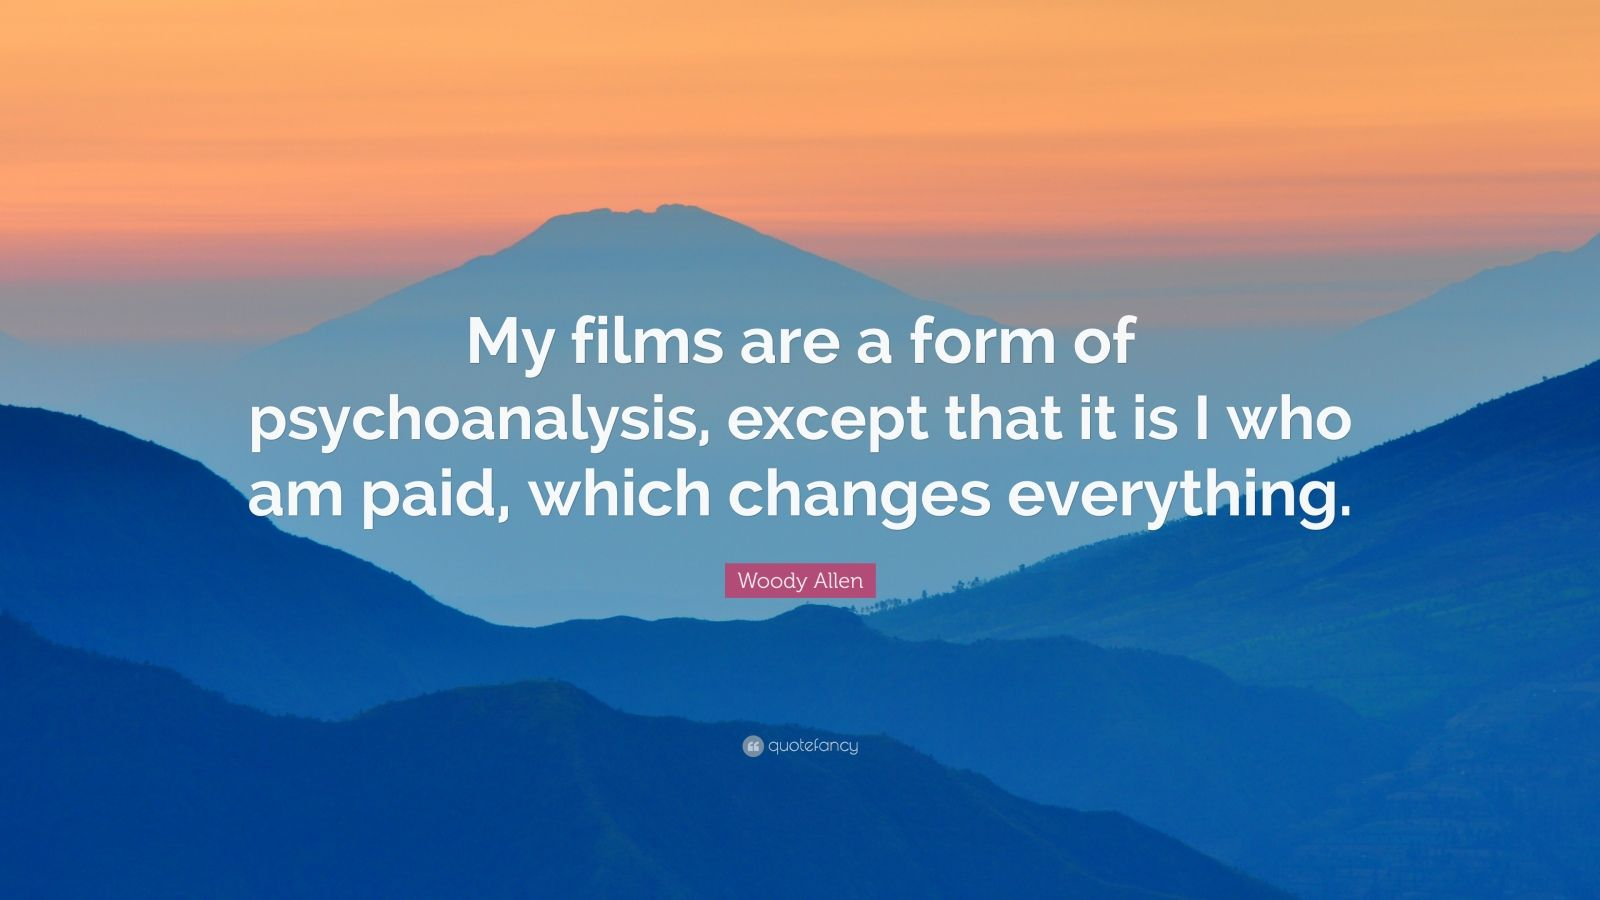 """Woody Allen Quote: """"My films are a form of psychoanalysis, except that it is I who am paid, which changes everything."""""""